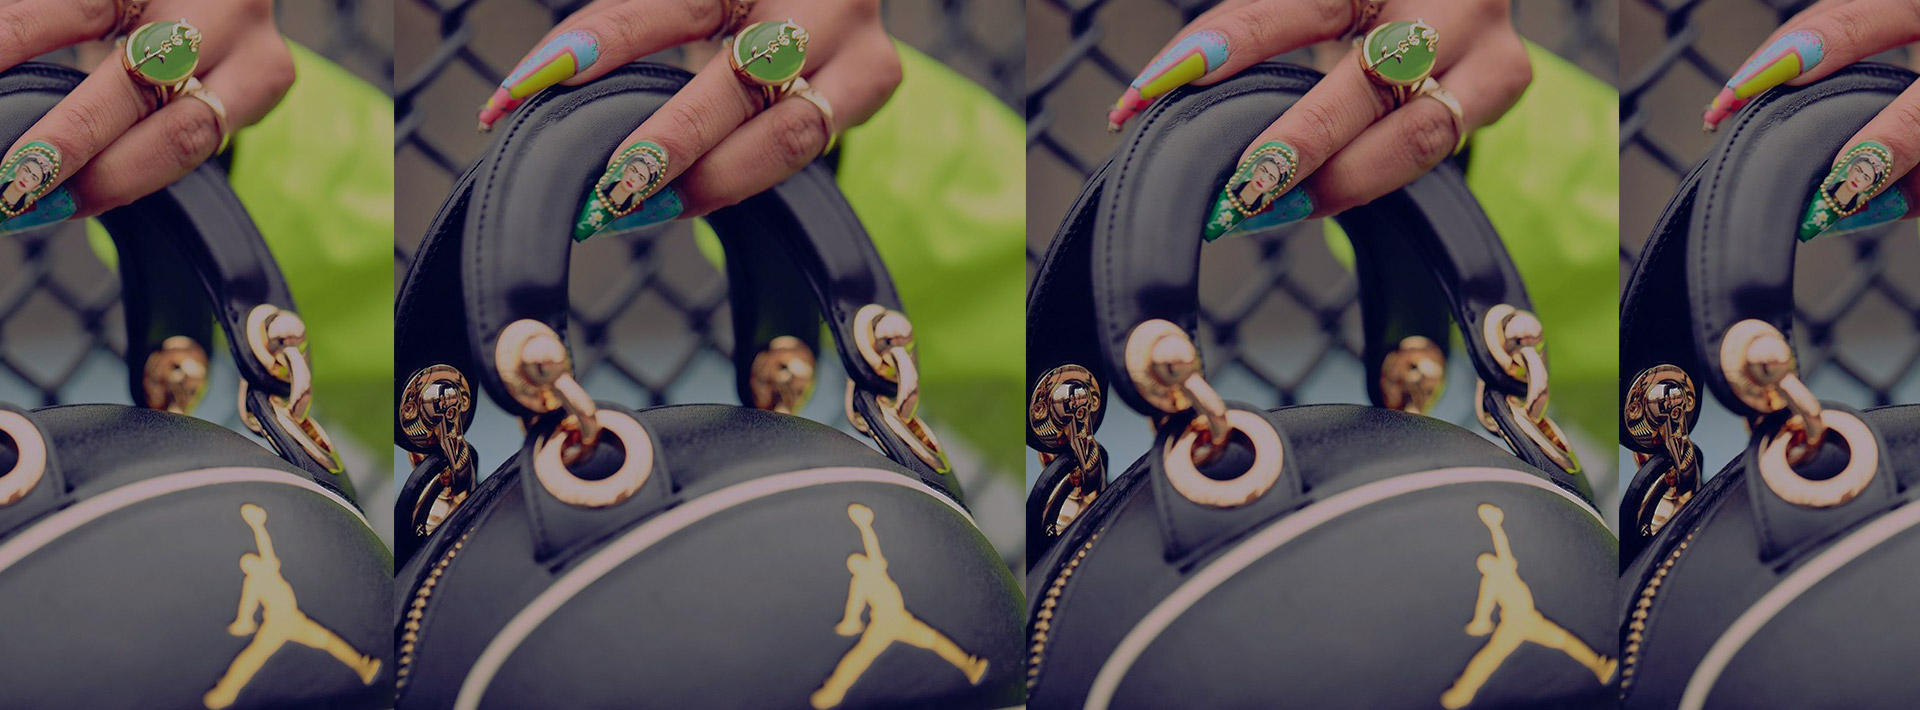 Andrea Bergart does it again with the handmade AJ's basketball bag homage in premium leather.